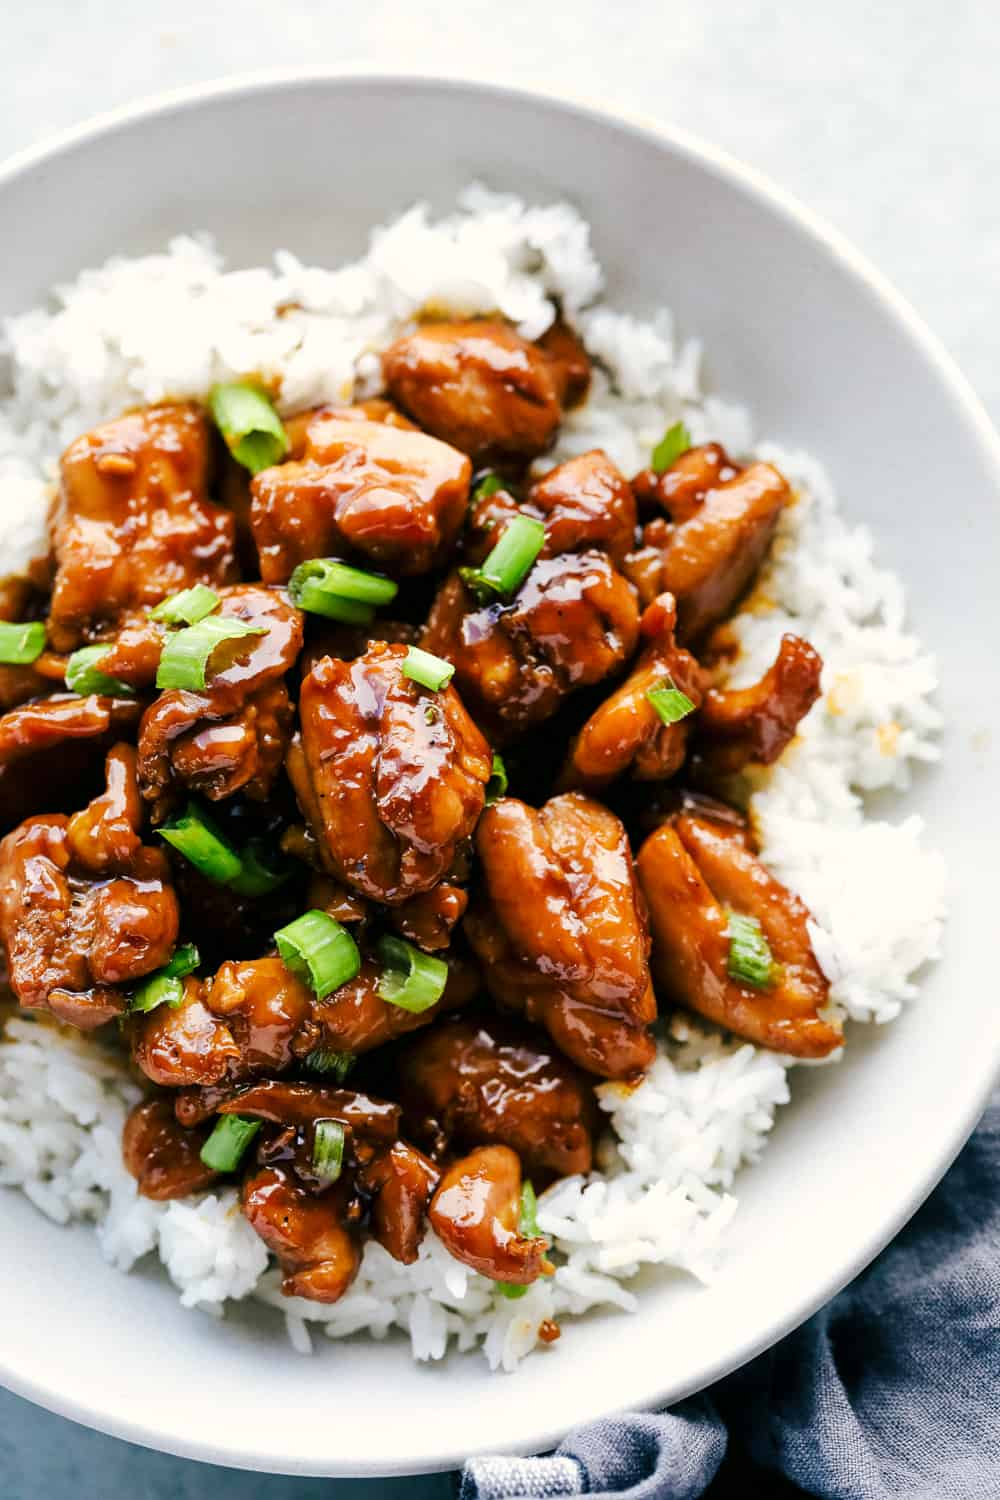 bourbon chicken over white rice and garnished with green onions